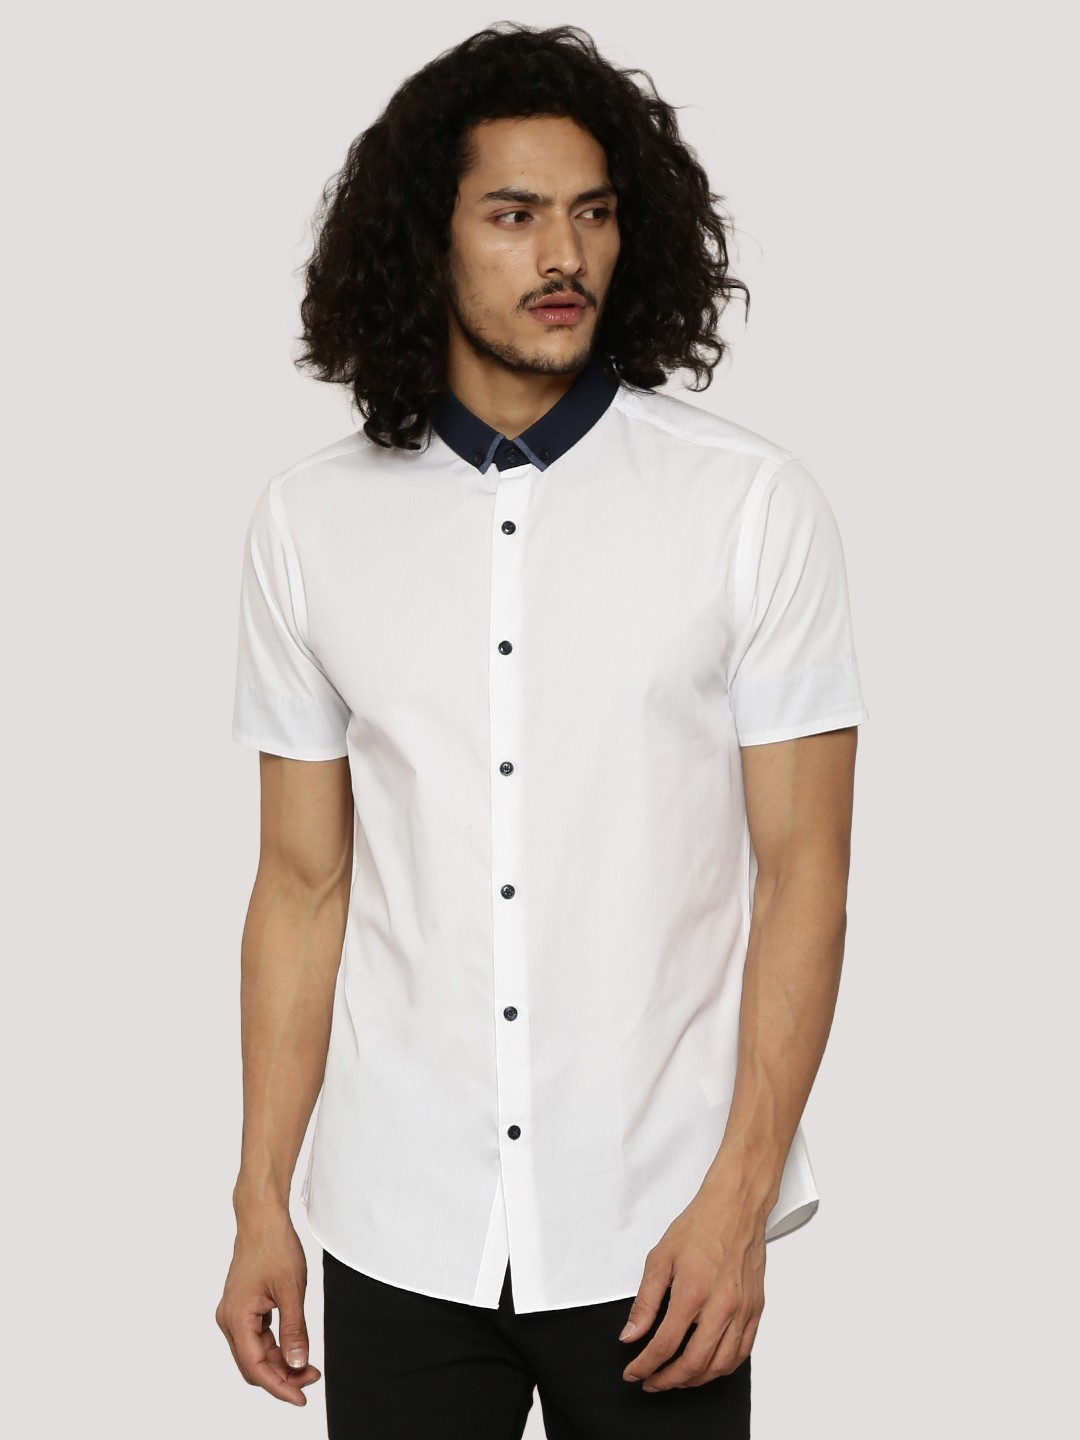 Mens Casual Shirt Fashion Collection  Curtis Collection